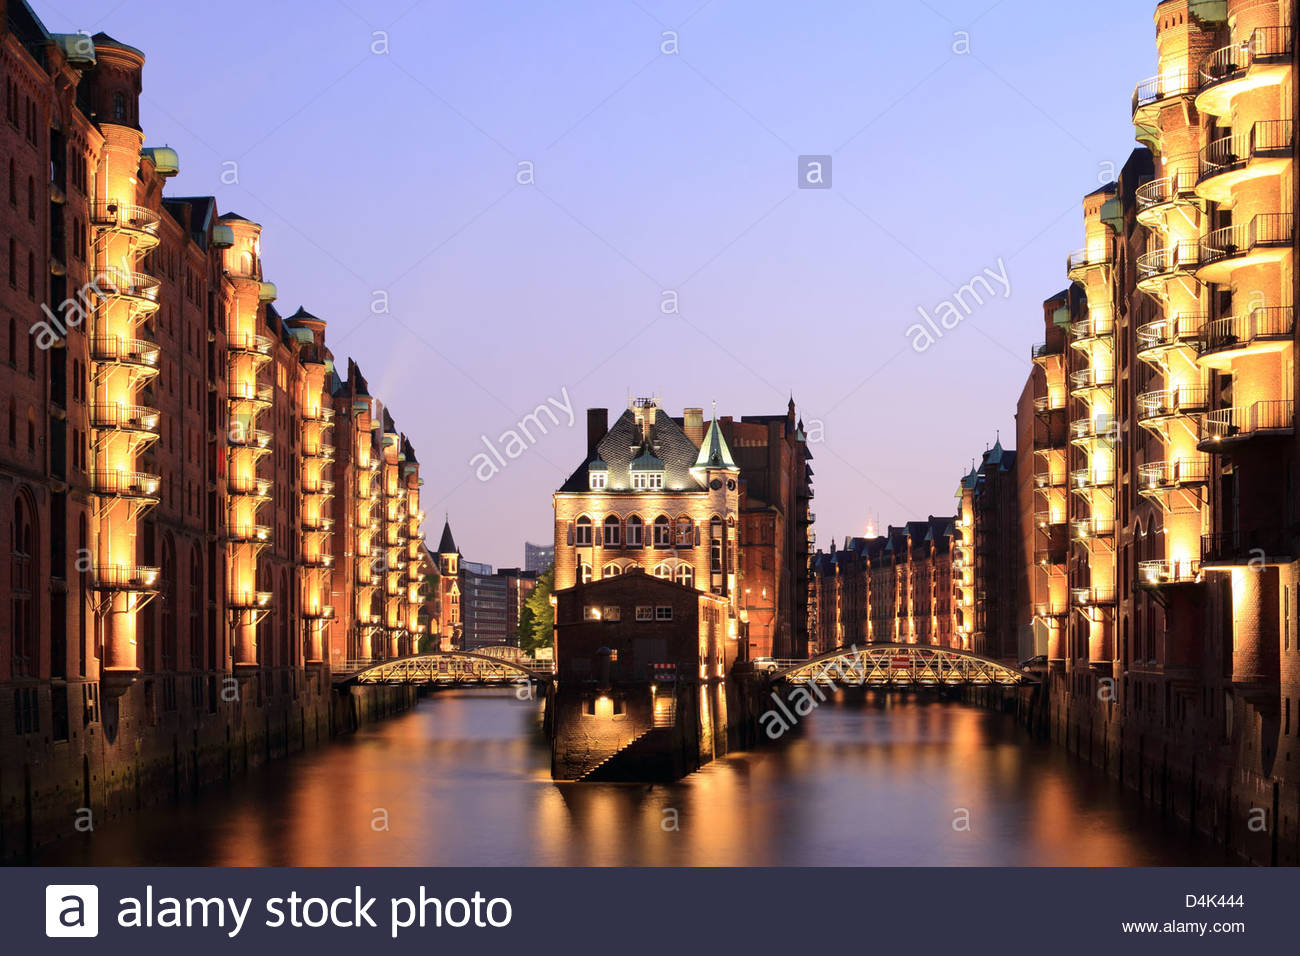 Buildings on river illuminated at night - Stock Image